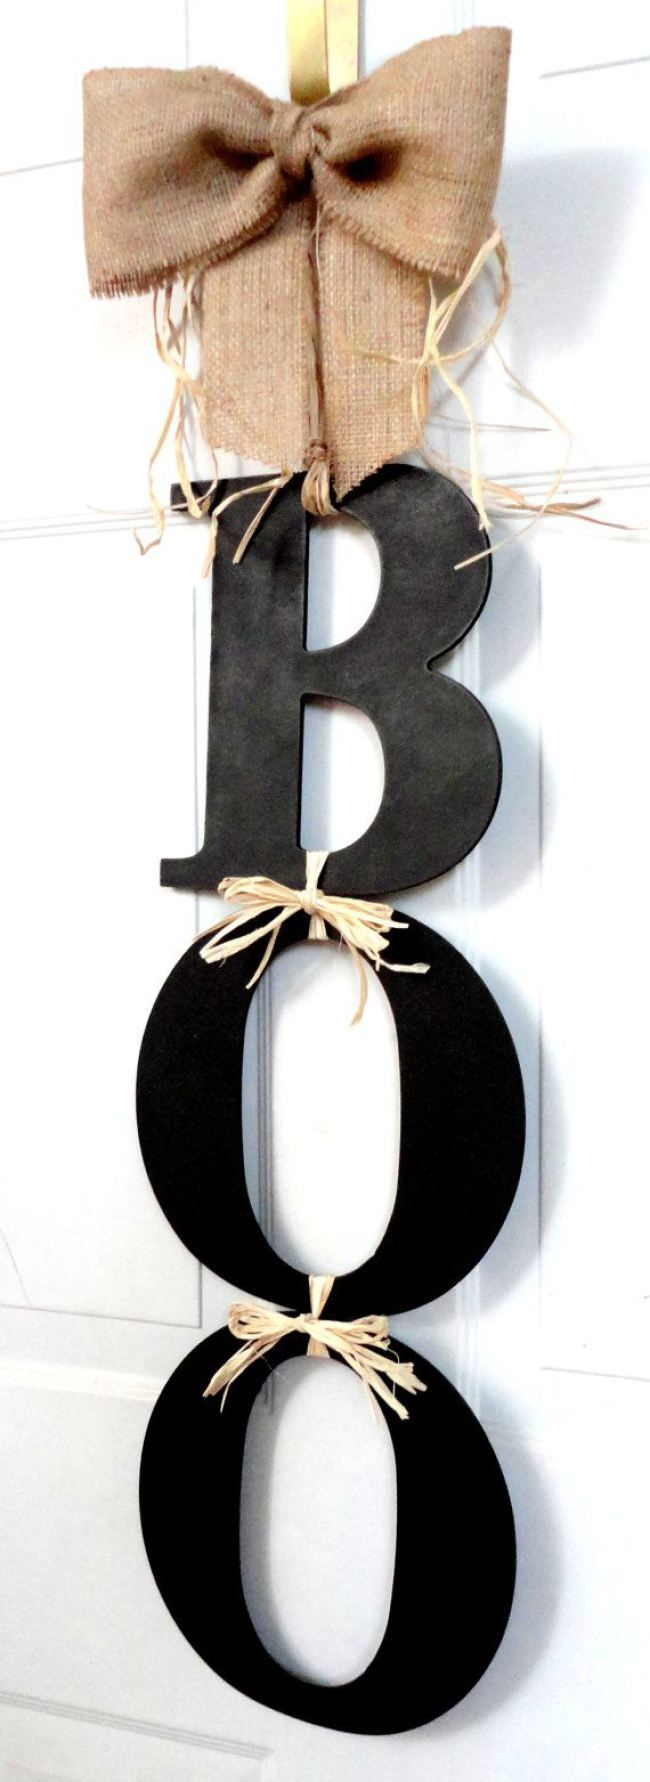 #Halloween #door #decor #boo #sign #wood #letters #DIY #decoration More pictures on the website. Click to see! Thank you!